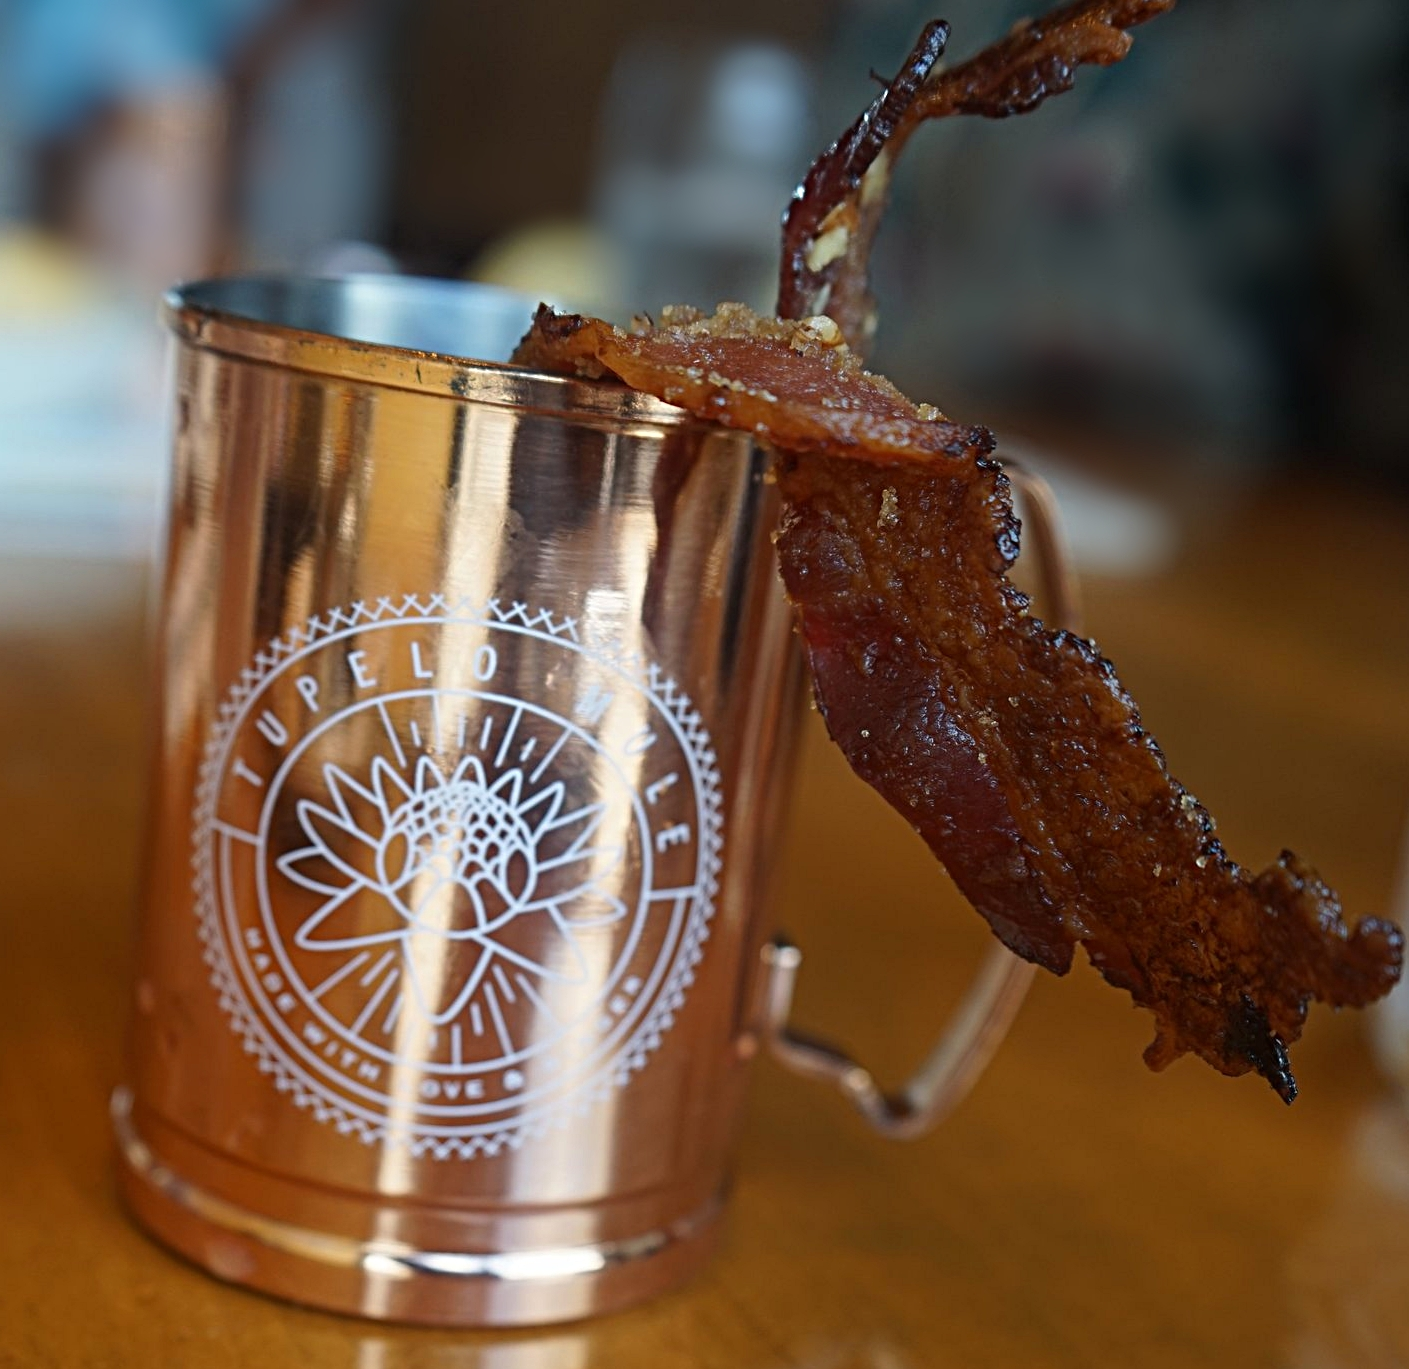 A place that gives a side of bacon its proper respect by putting it in a gold cup.